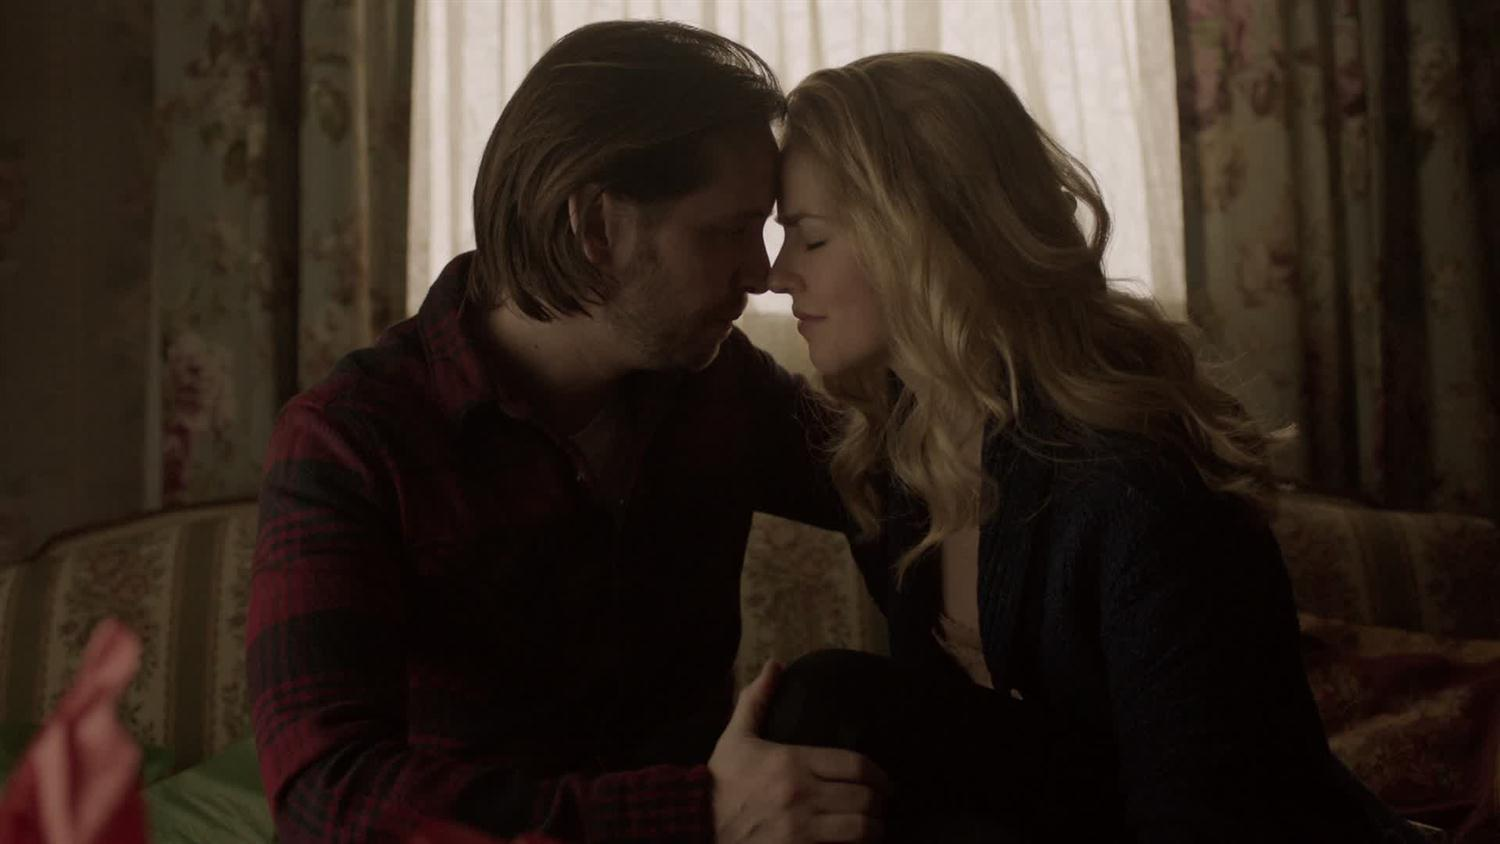 Inside 12 Monkeys: Season 2, Episode 13